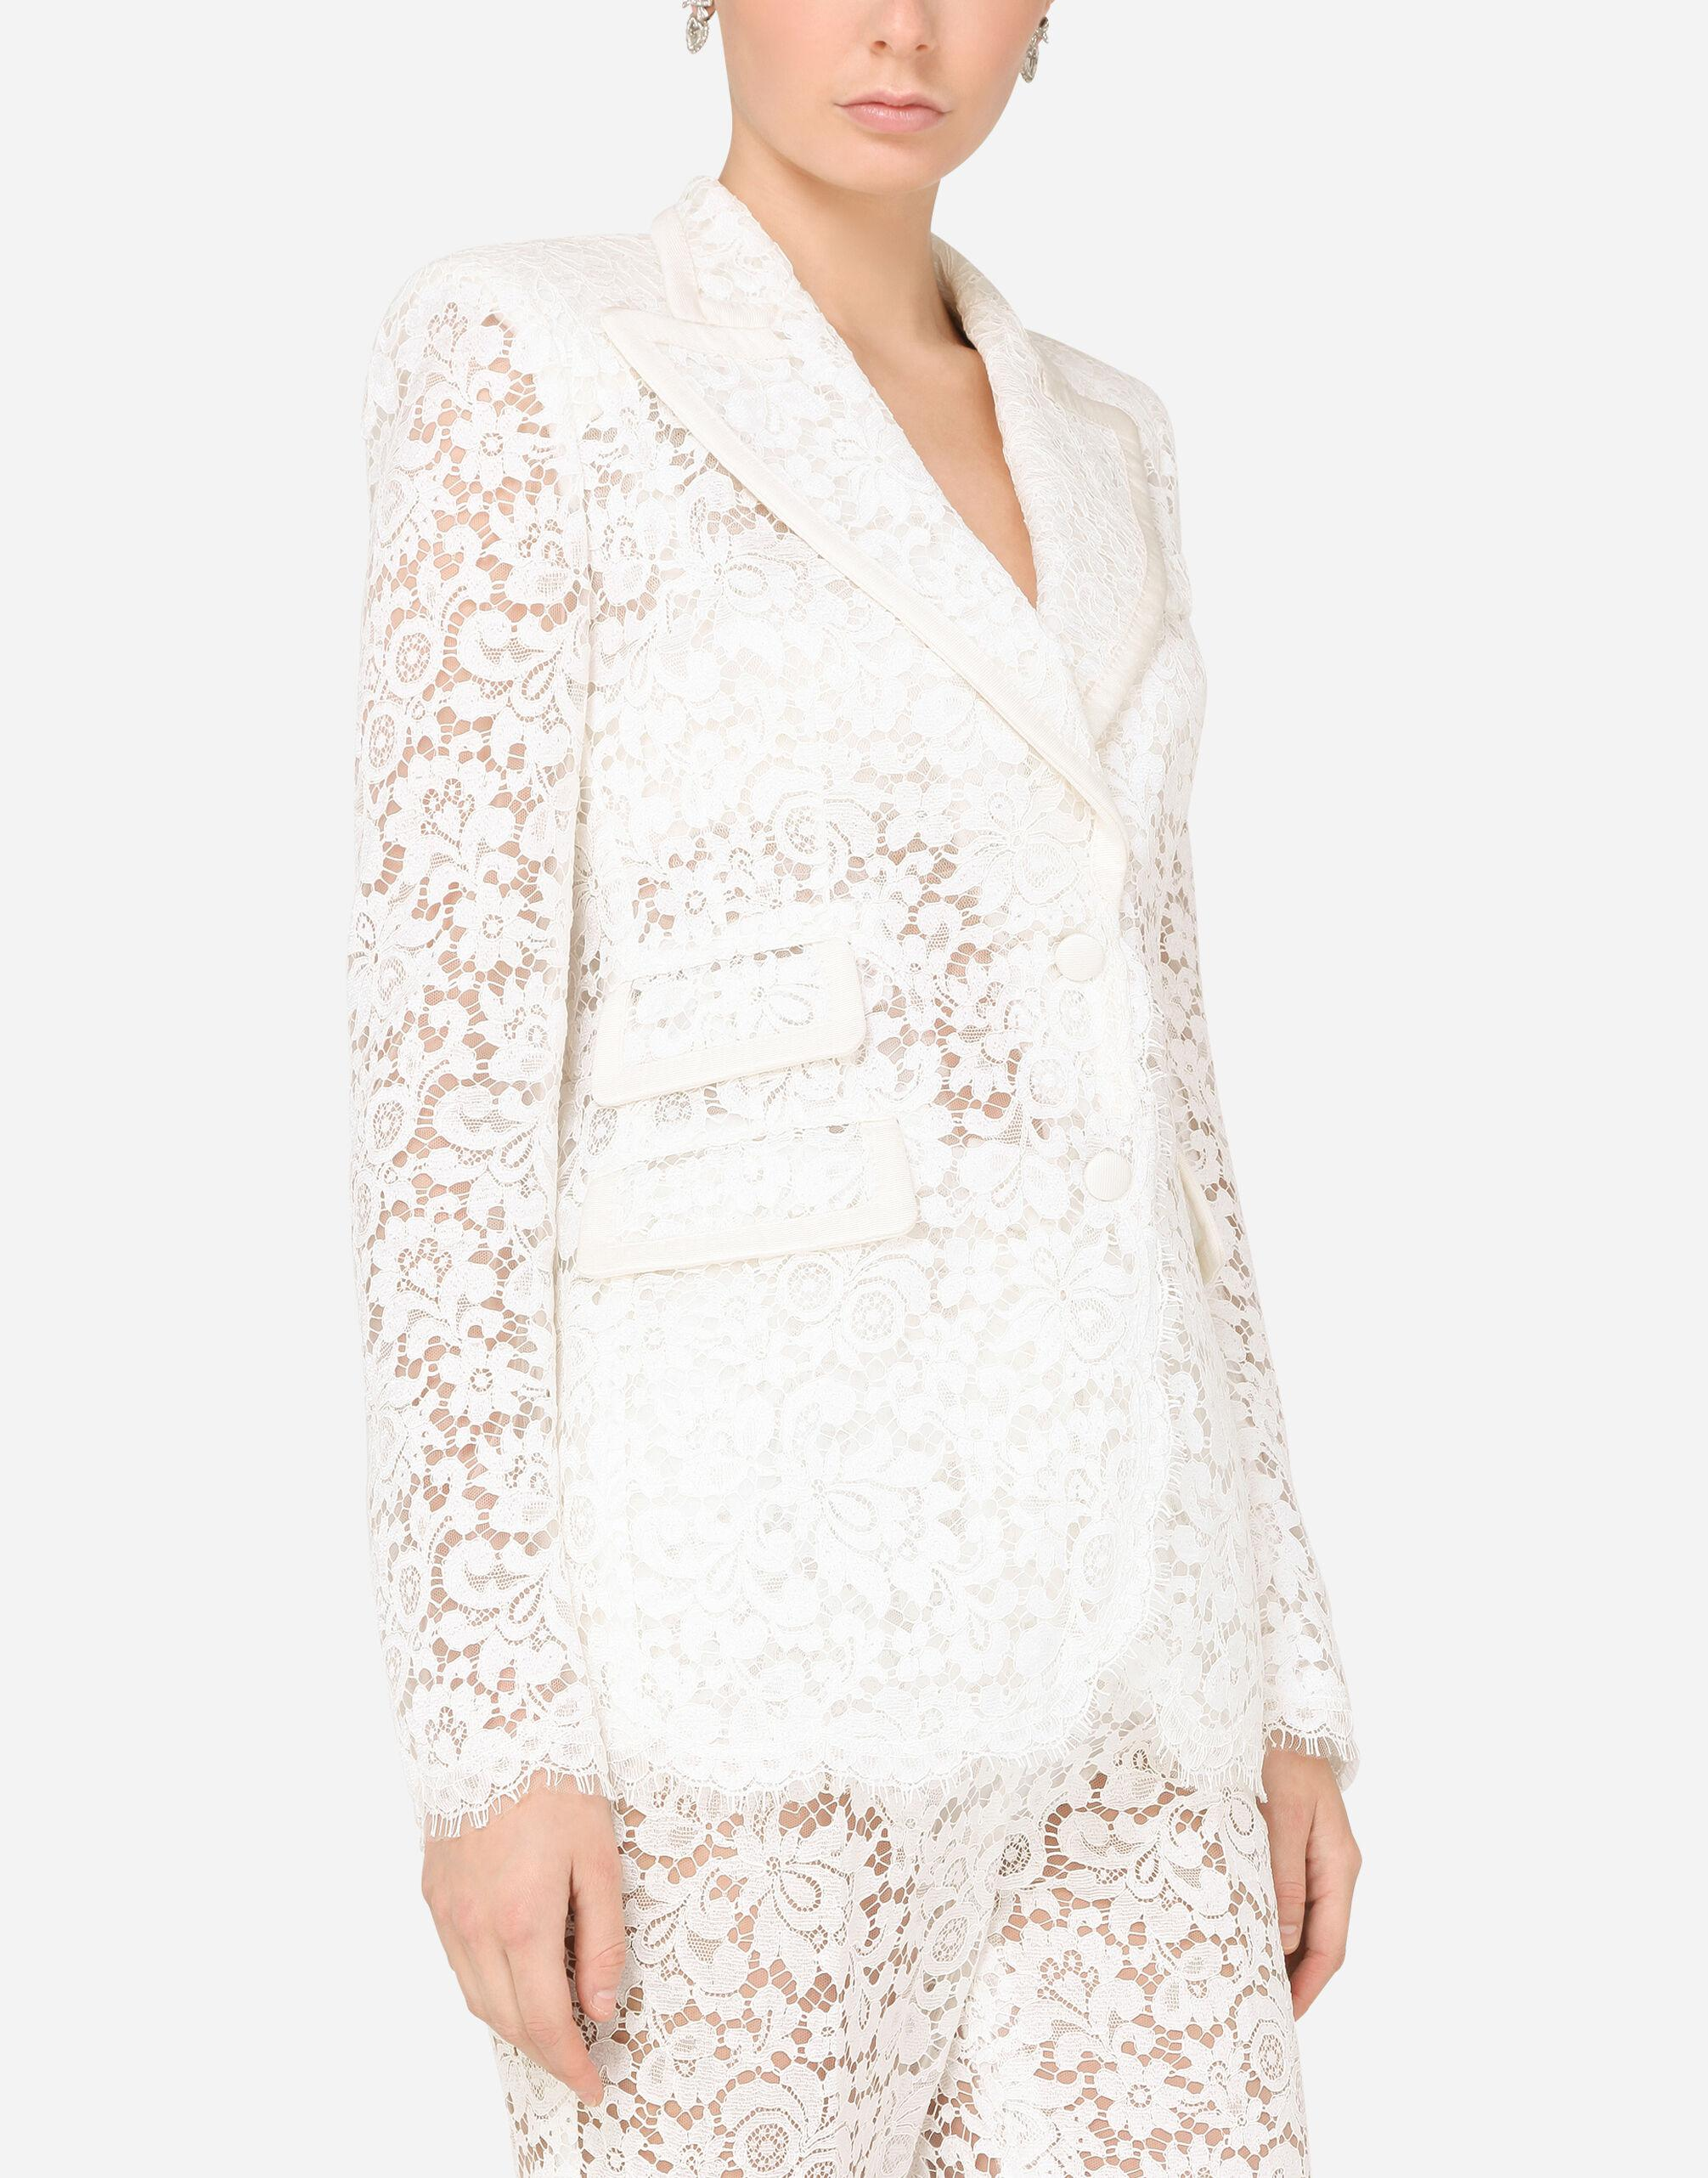 Lace jacket with edge detailing 2